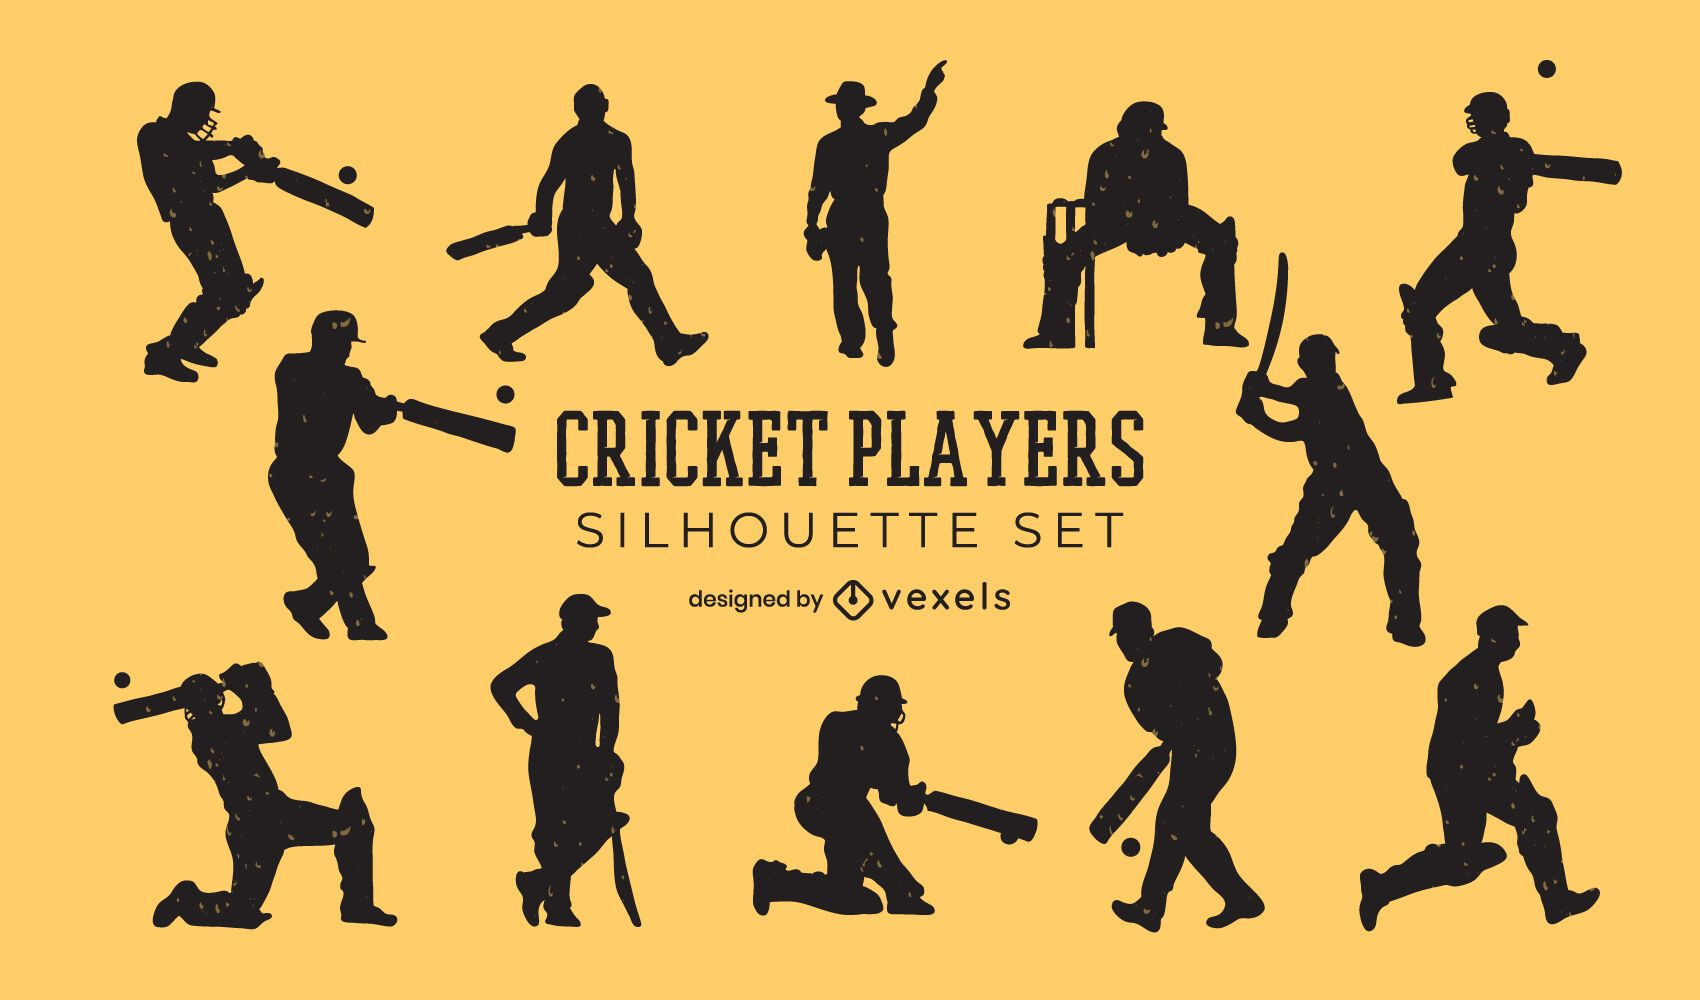 Cricket players people silhouette set